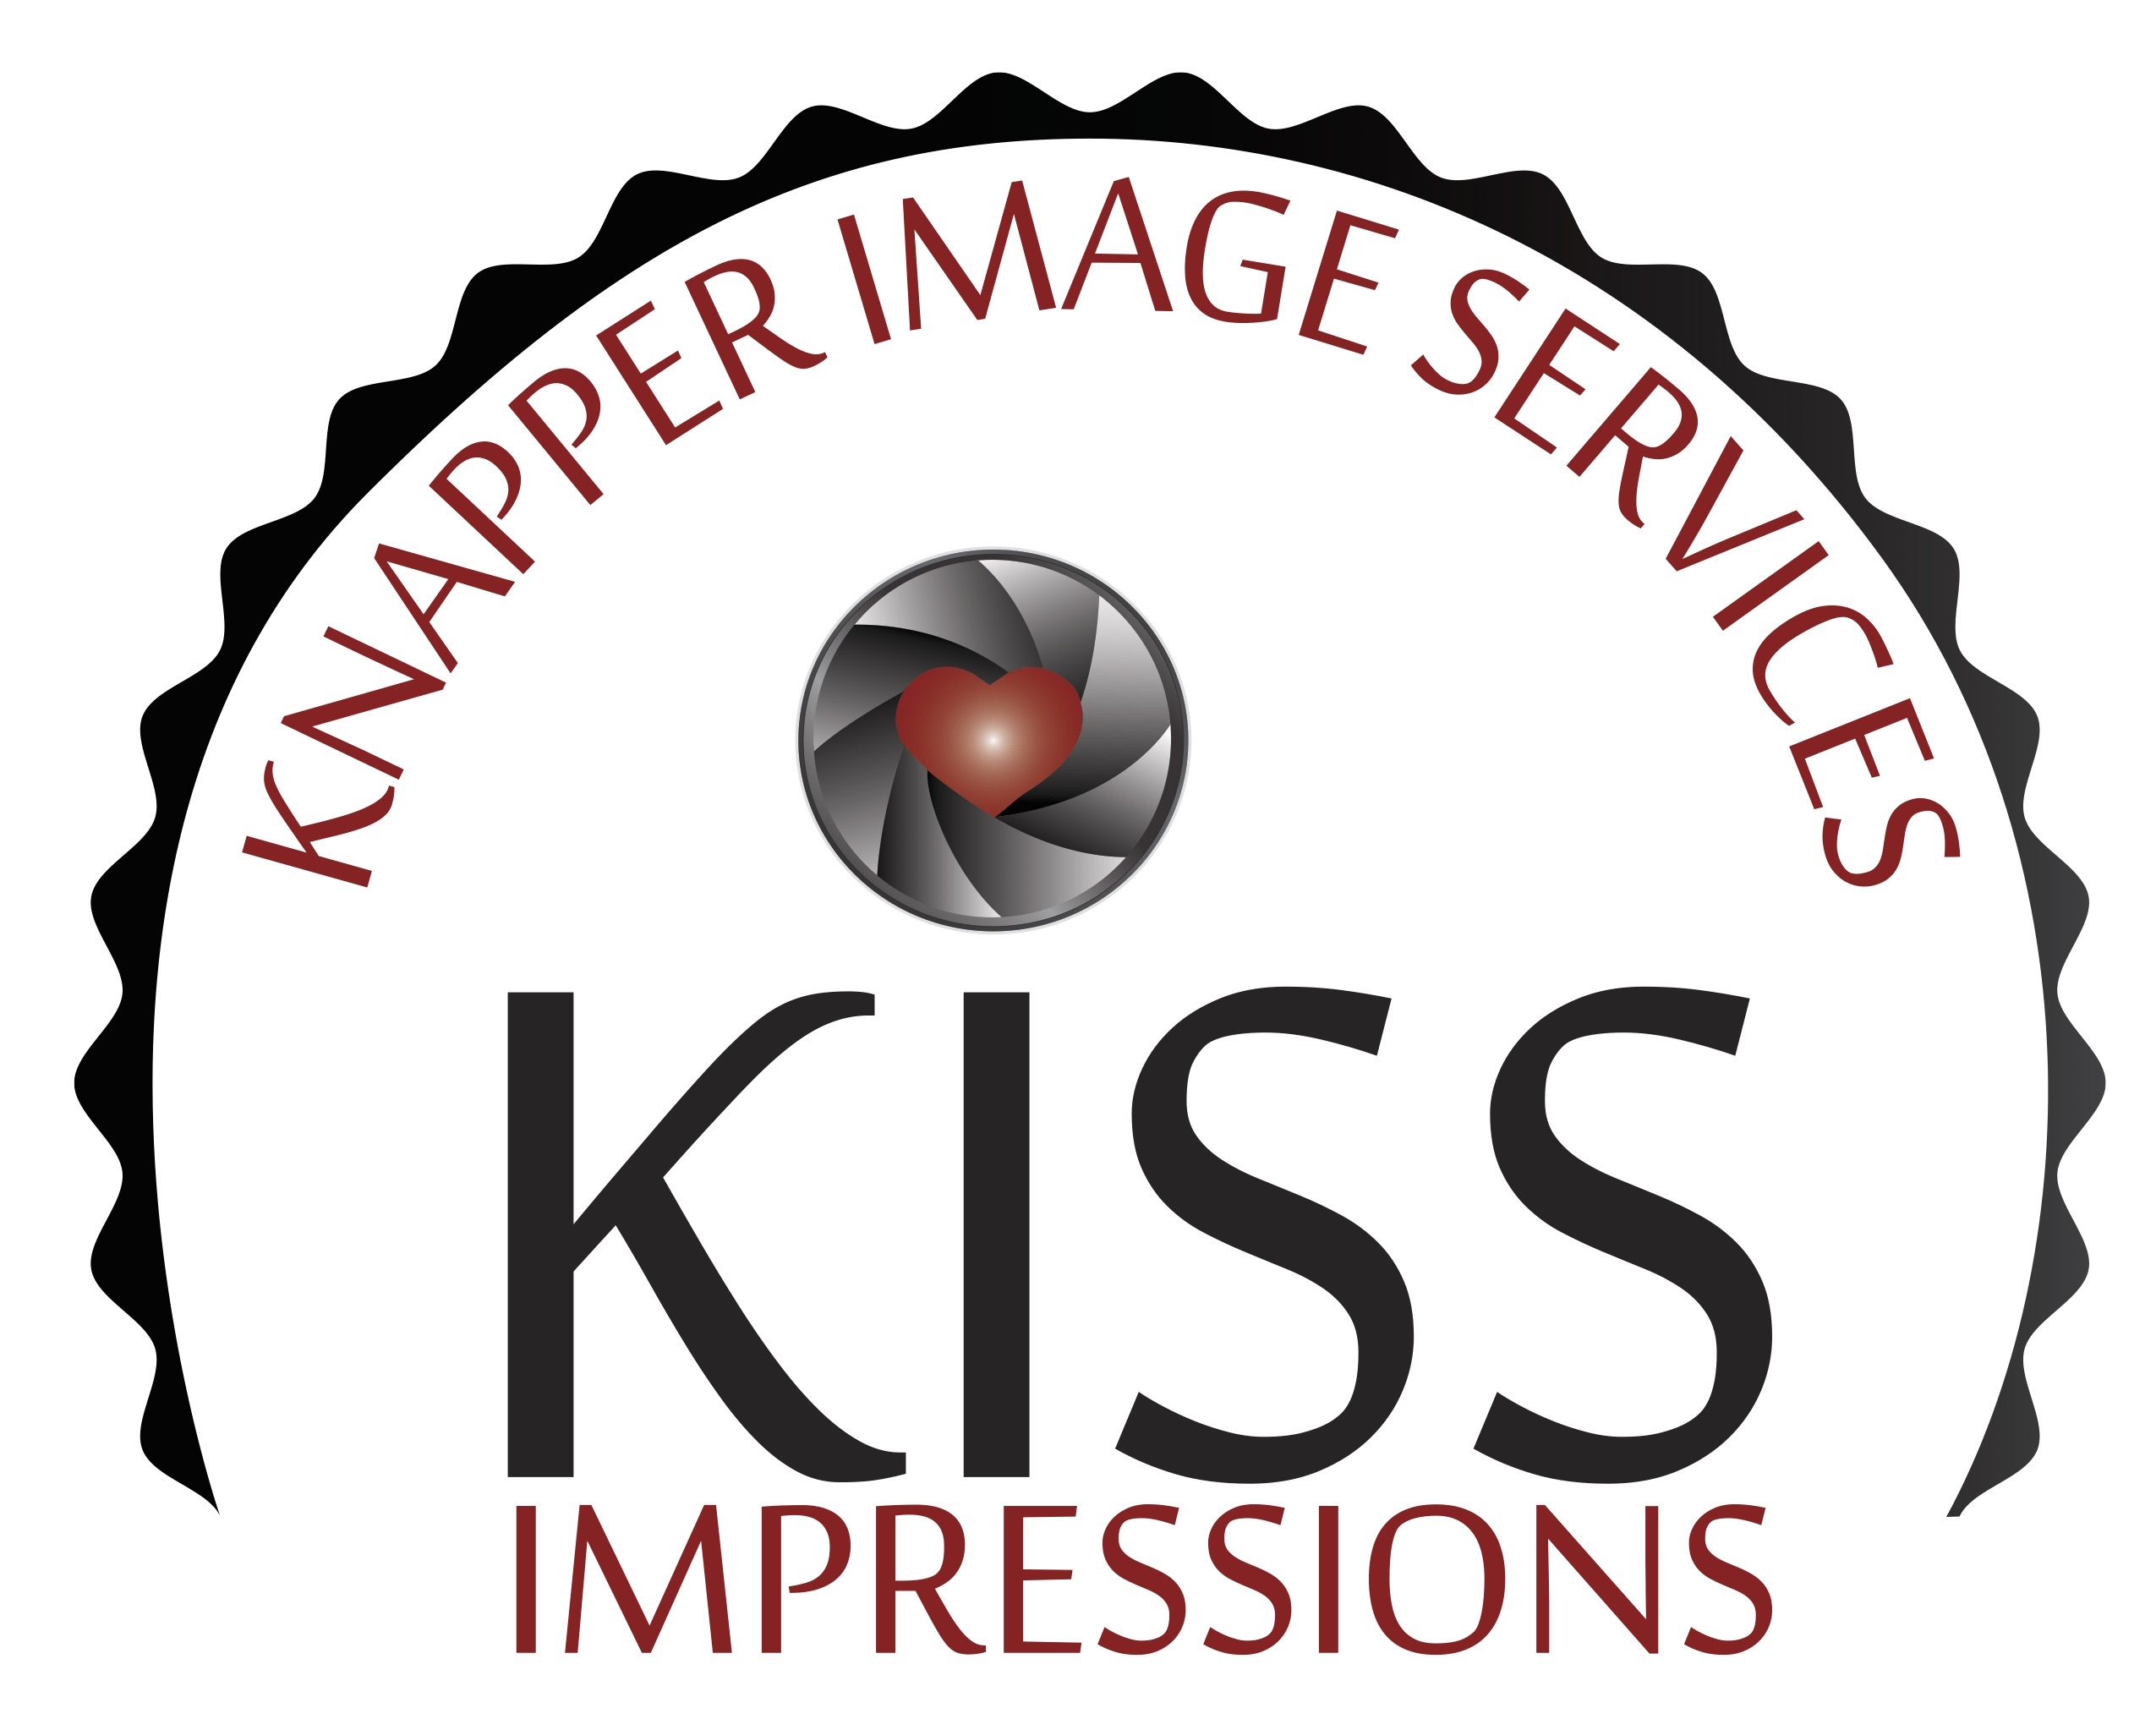 Knapper Image Services